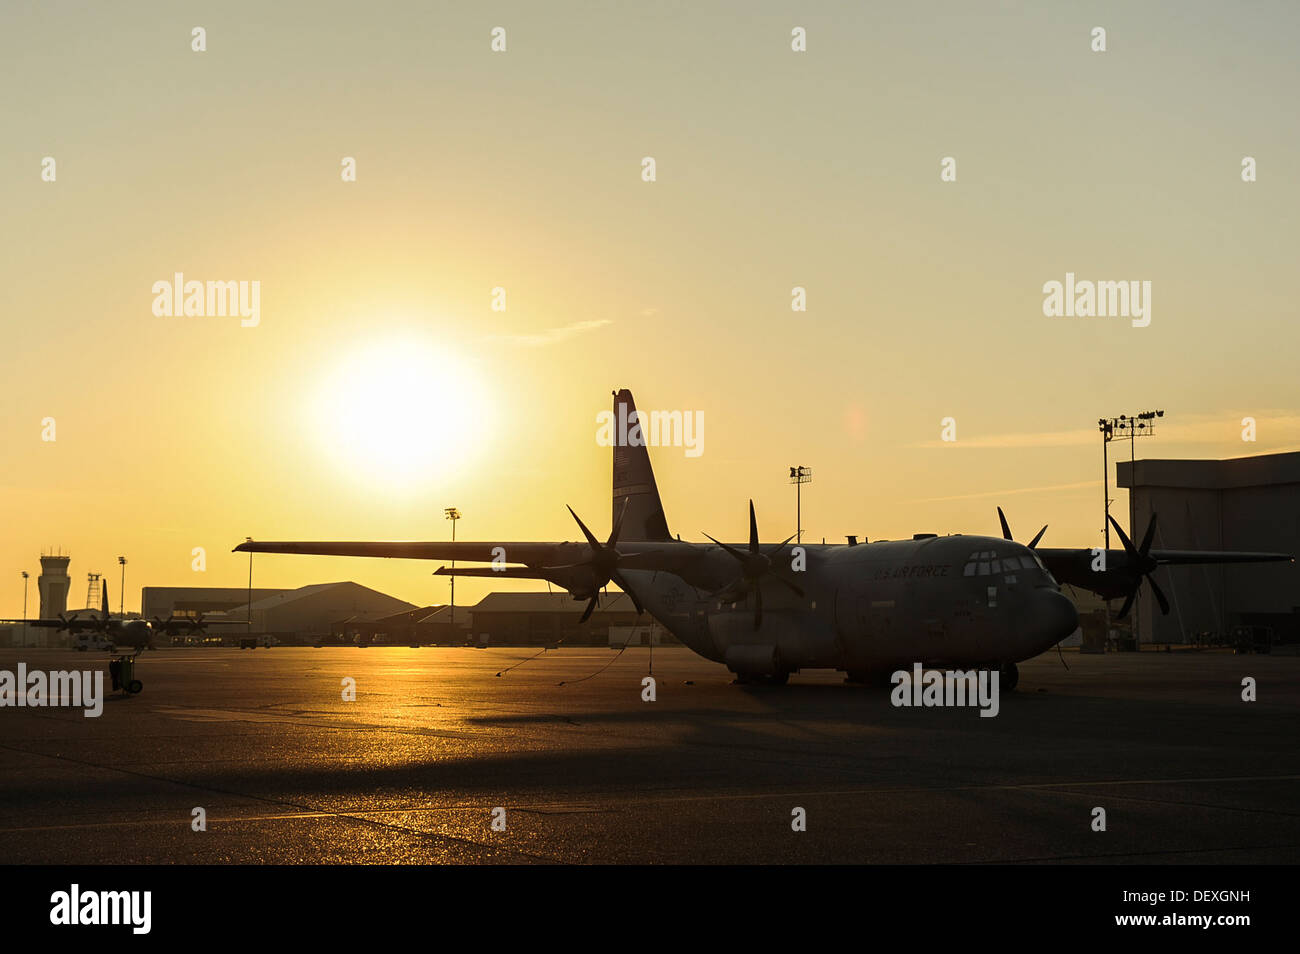 A C-130J waits for a flight crew to begin preflight inspections before takeoff Sept. 17, 2013, at Little Rock Air Force Base, Ark. Little Rock is home to 25 percent of the total U.S. Air Force C-130 fleet. - Stock Image